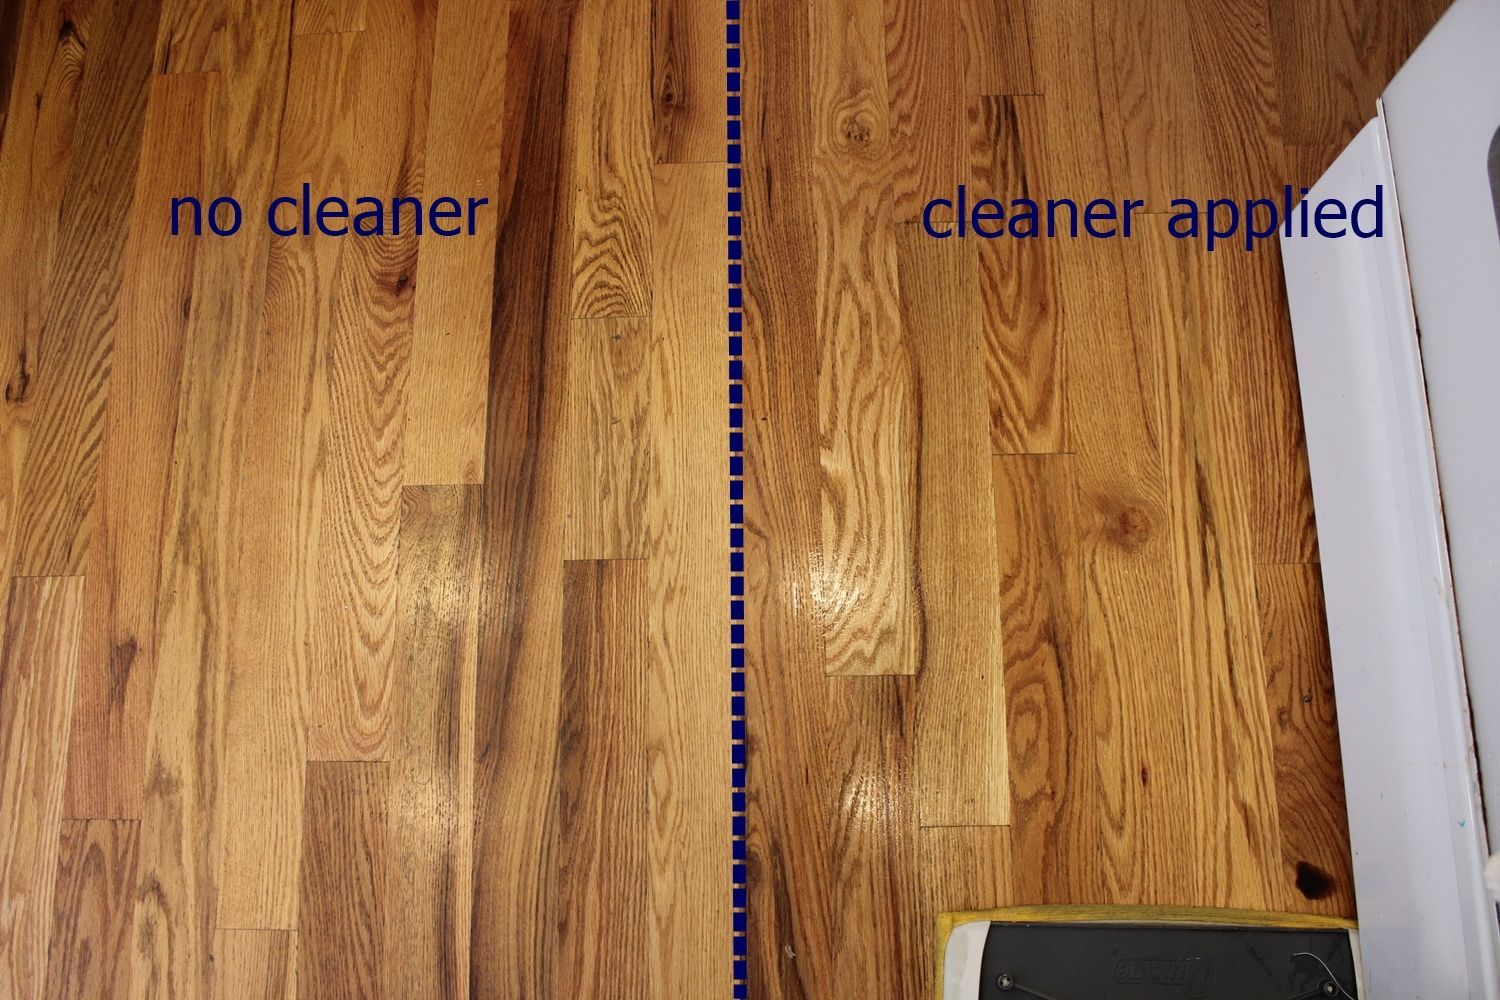 Superior DIY Wood Floor Cleaner   Apply To Floor